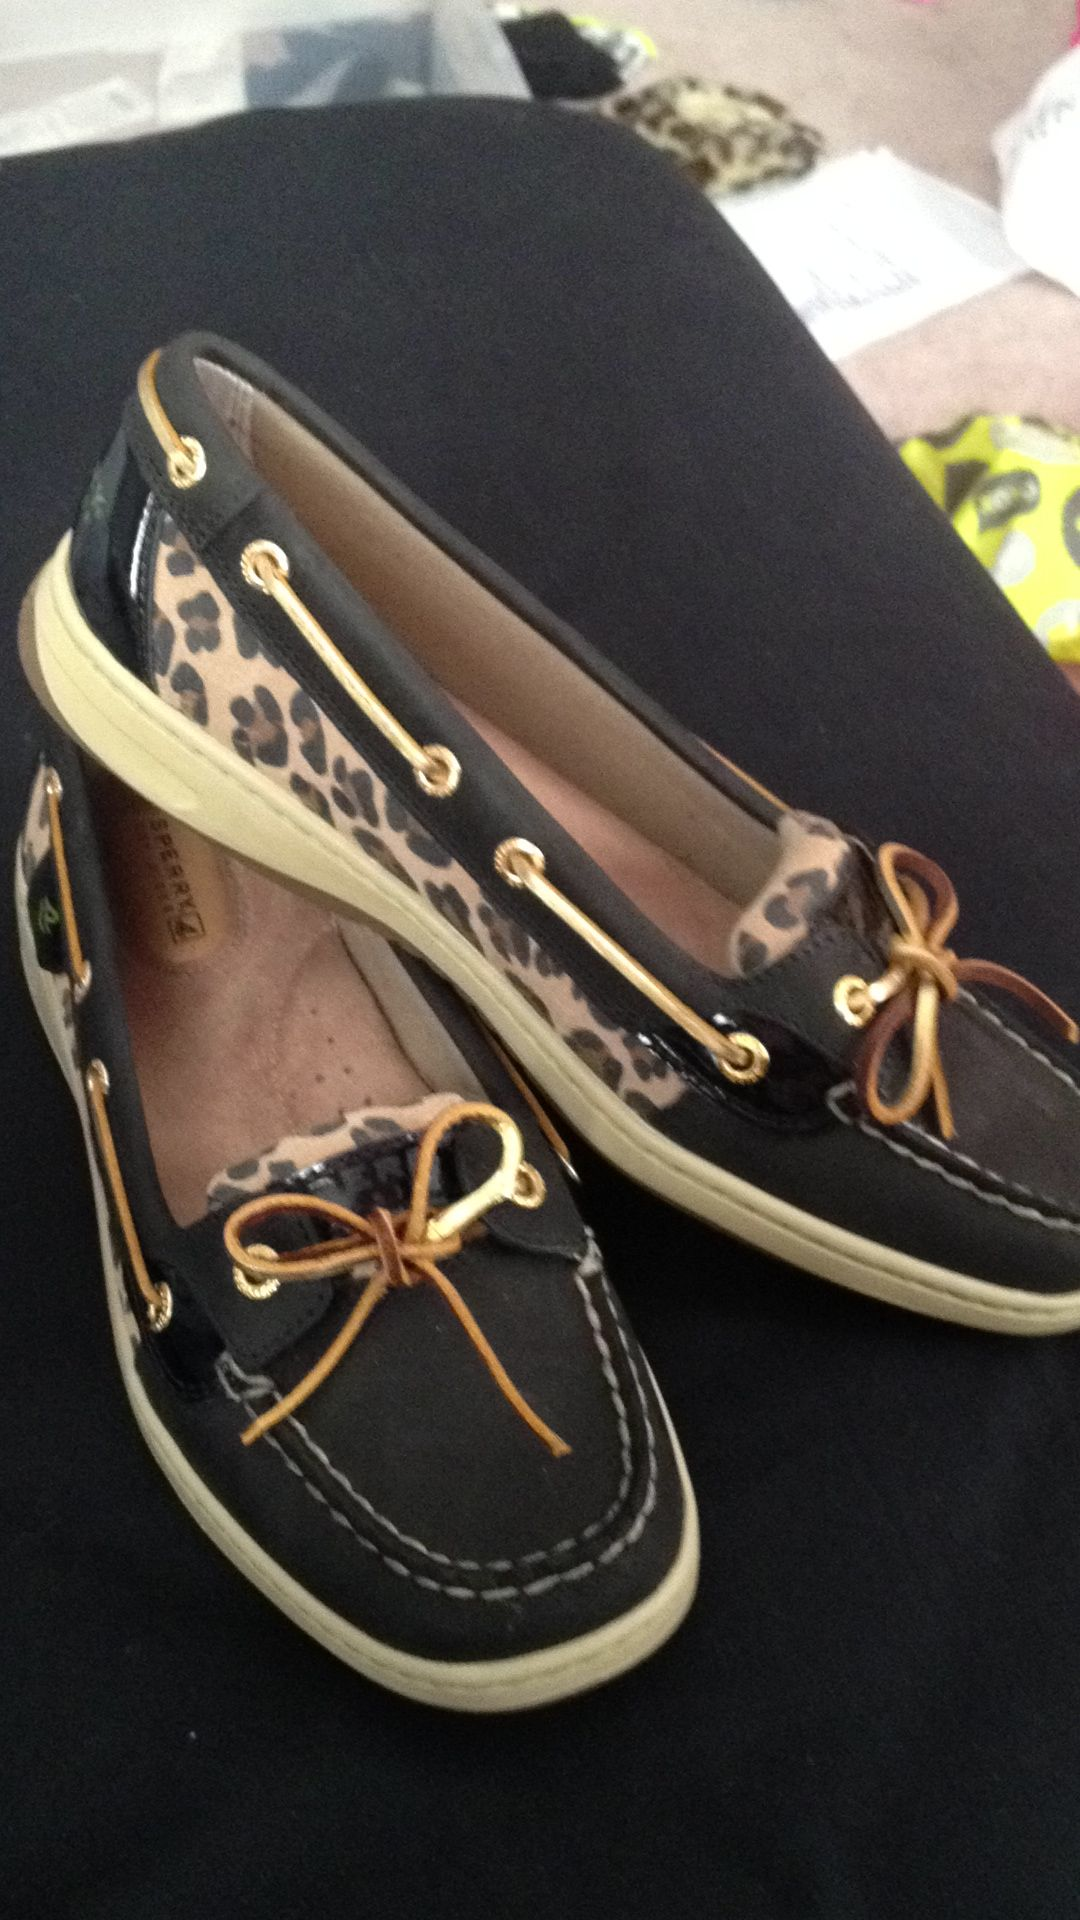 ad0081757c Sperry topsiders with cheetah print.